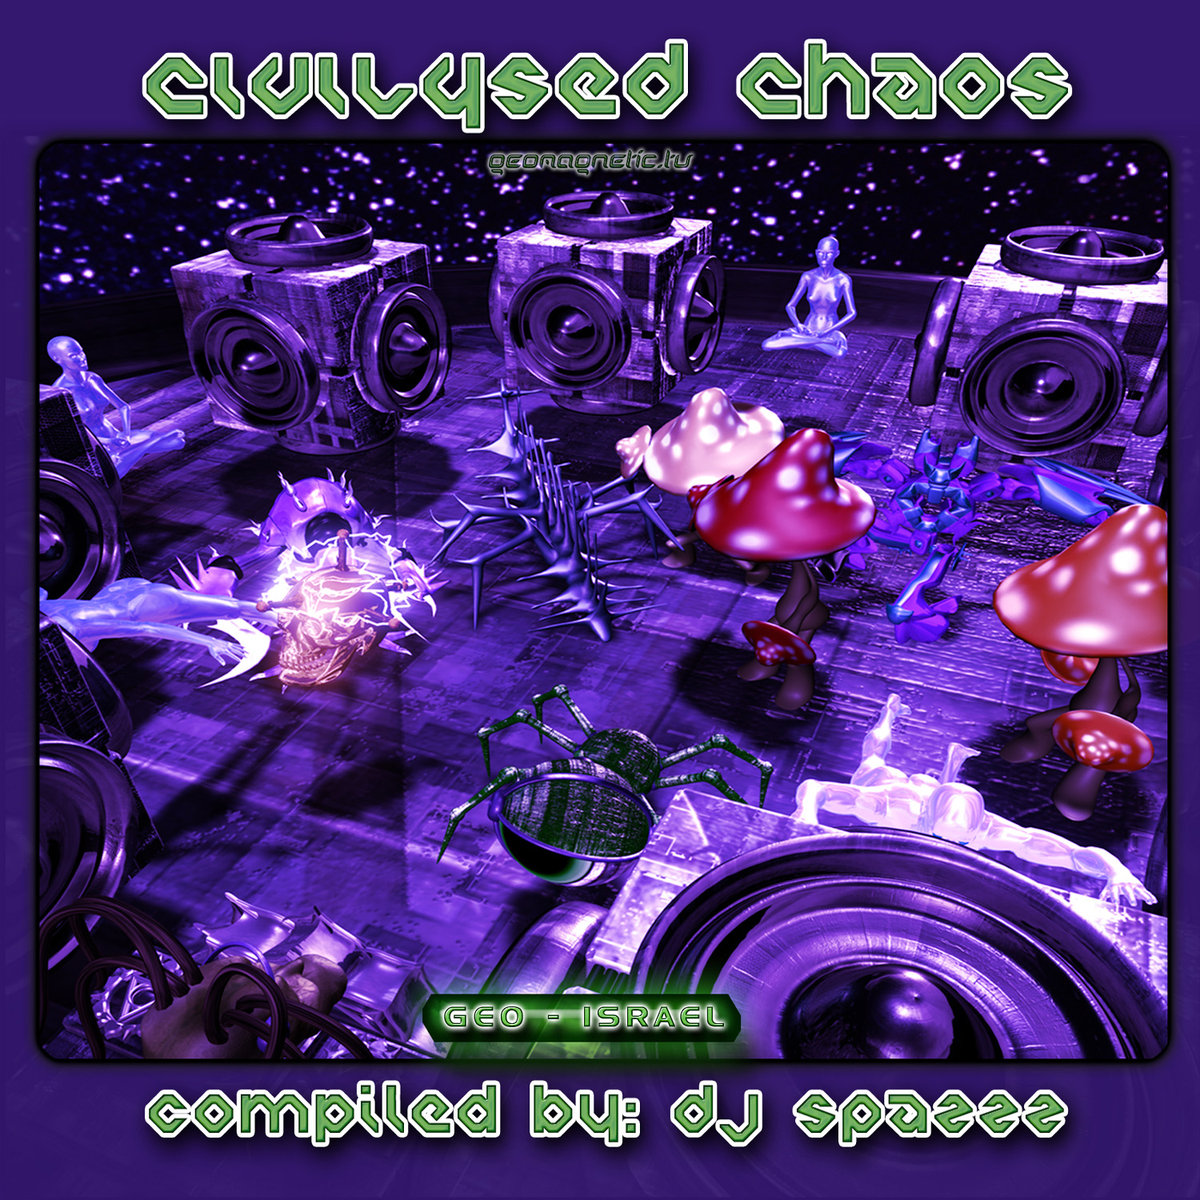 Various Artists - Civilysed Chaos (Compiled by DJ Spazzz) @ 'Various Artists - Civilysed Chaos (Compiled by DJ Spazzz)' album (electronic, goa)